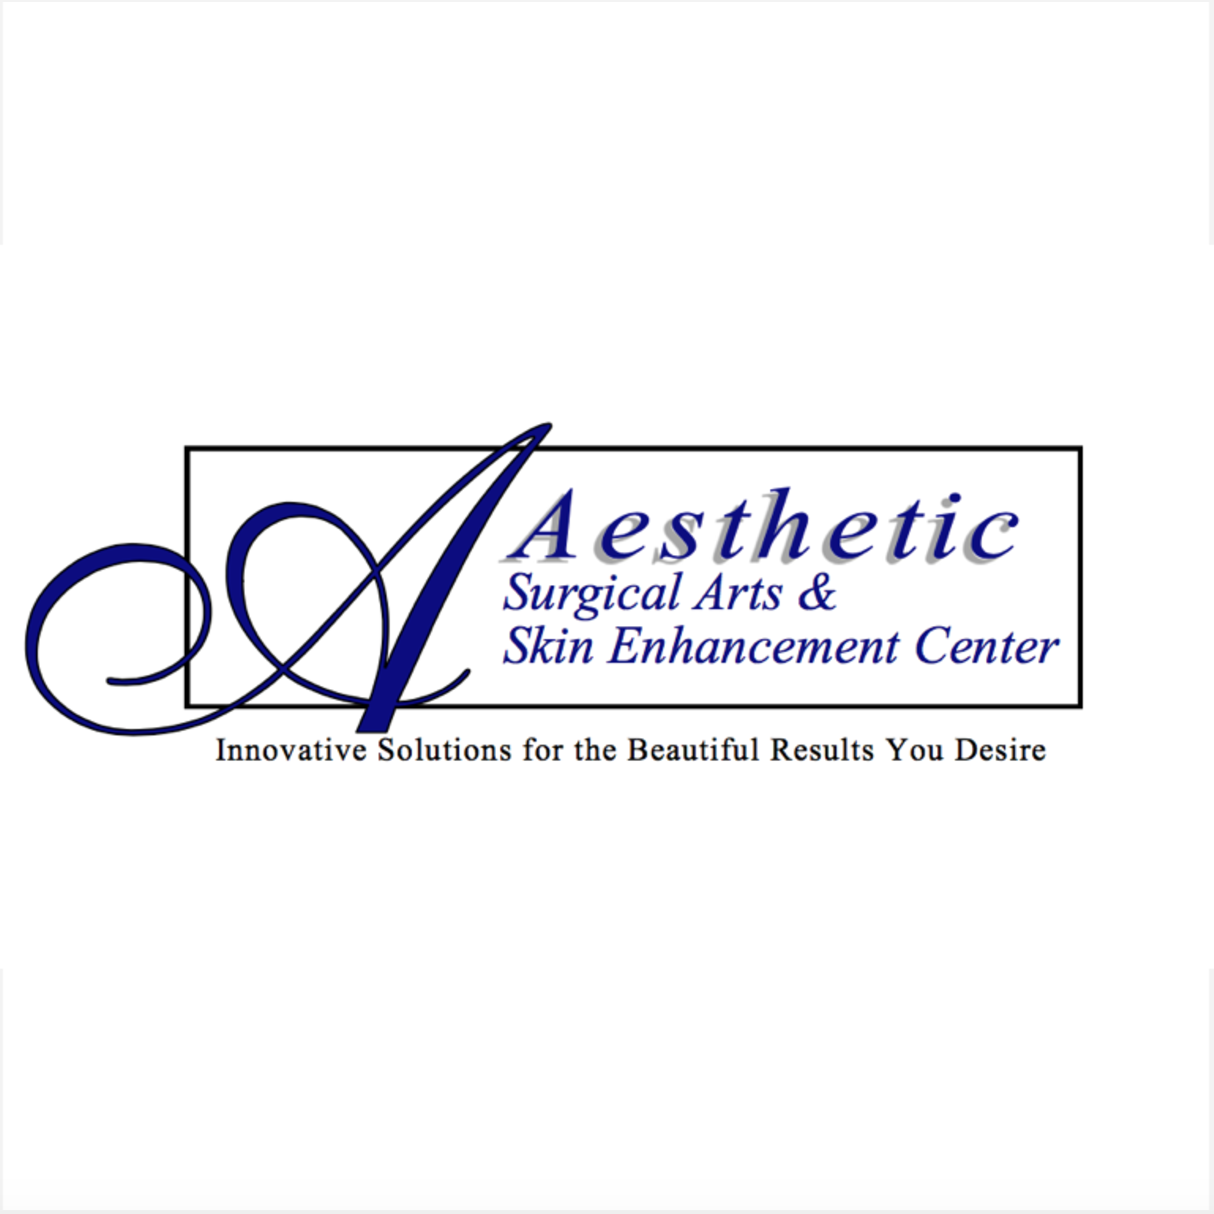 Aesthetic Surgical Arts